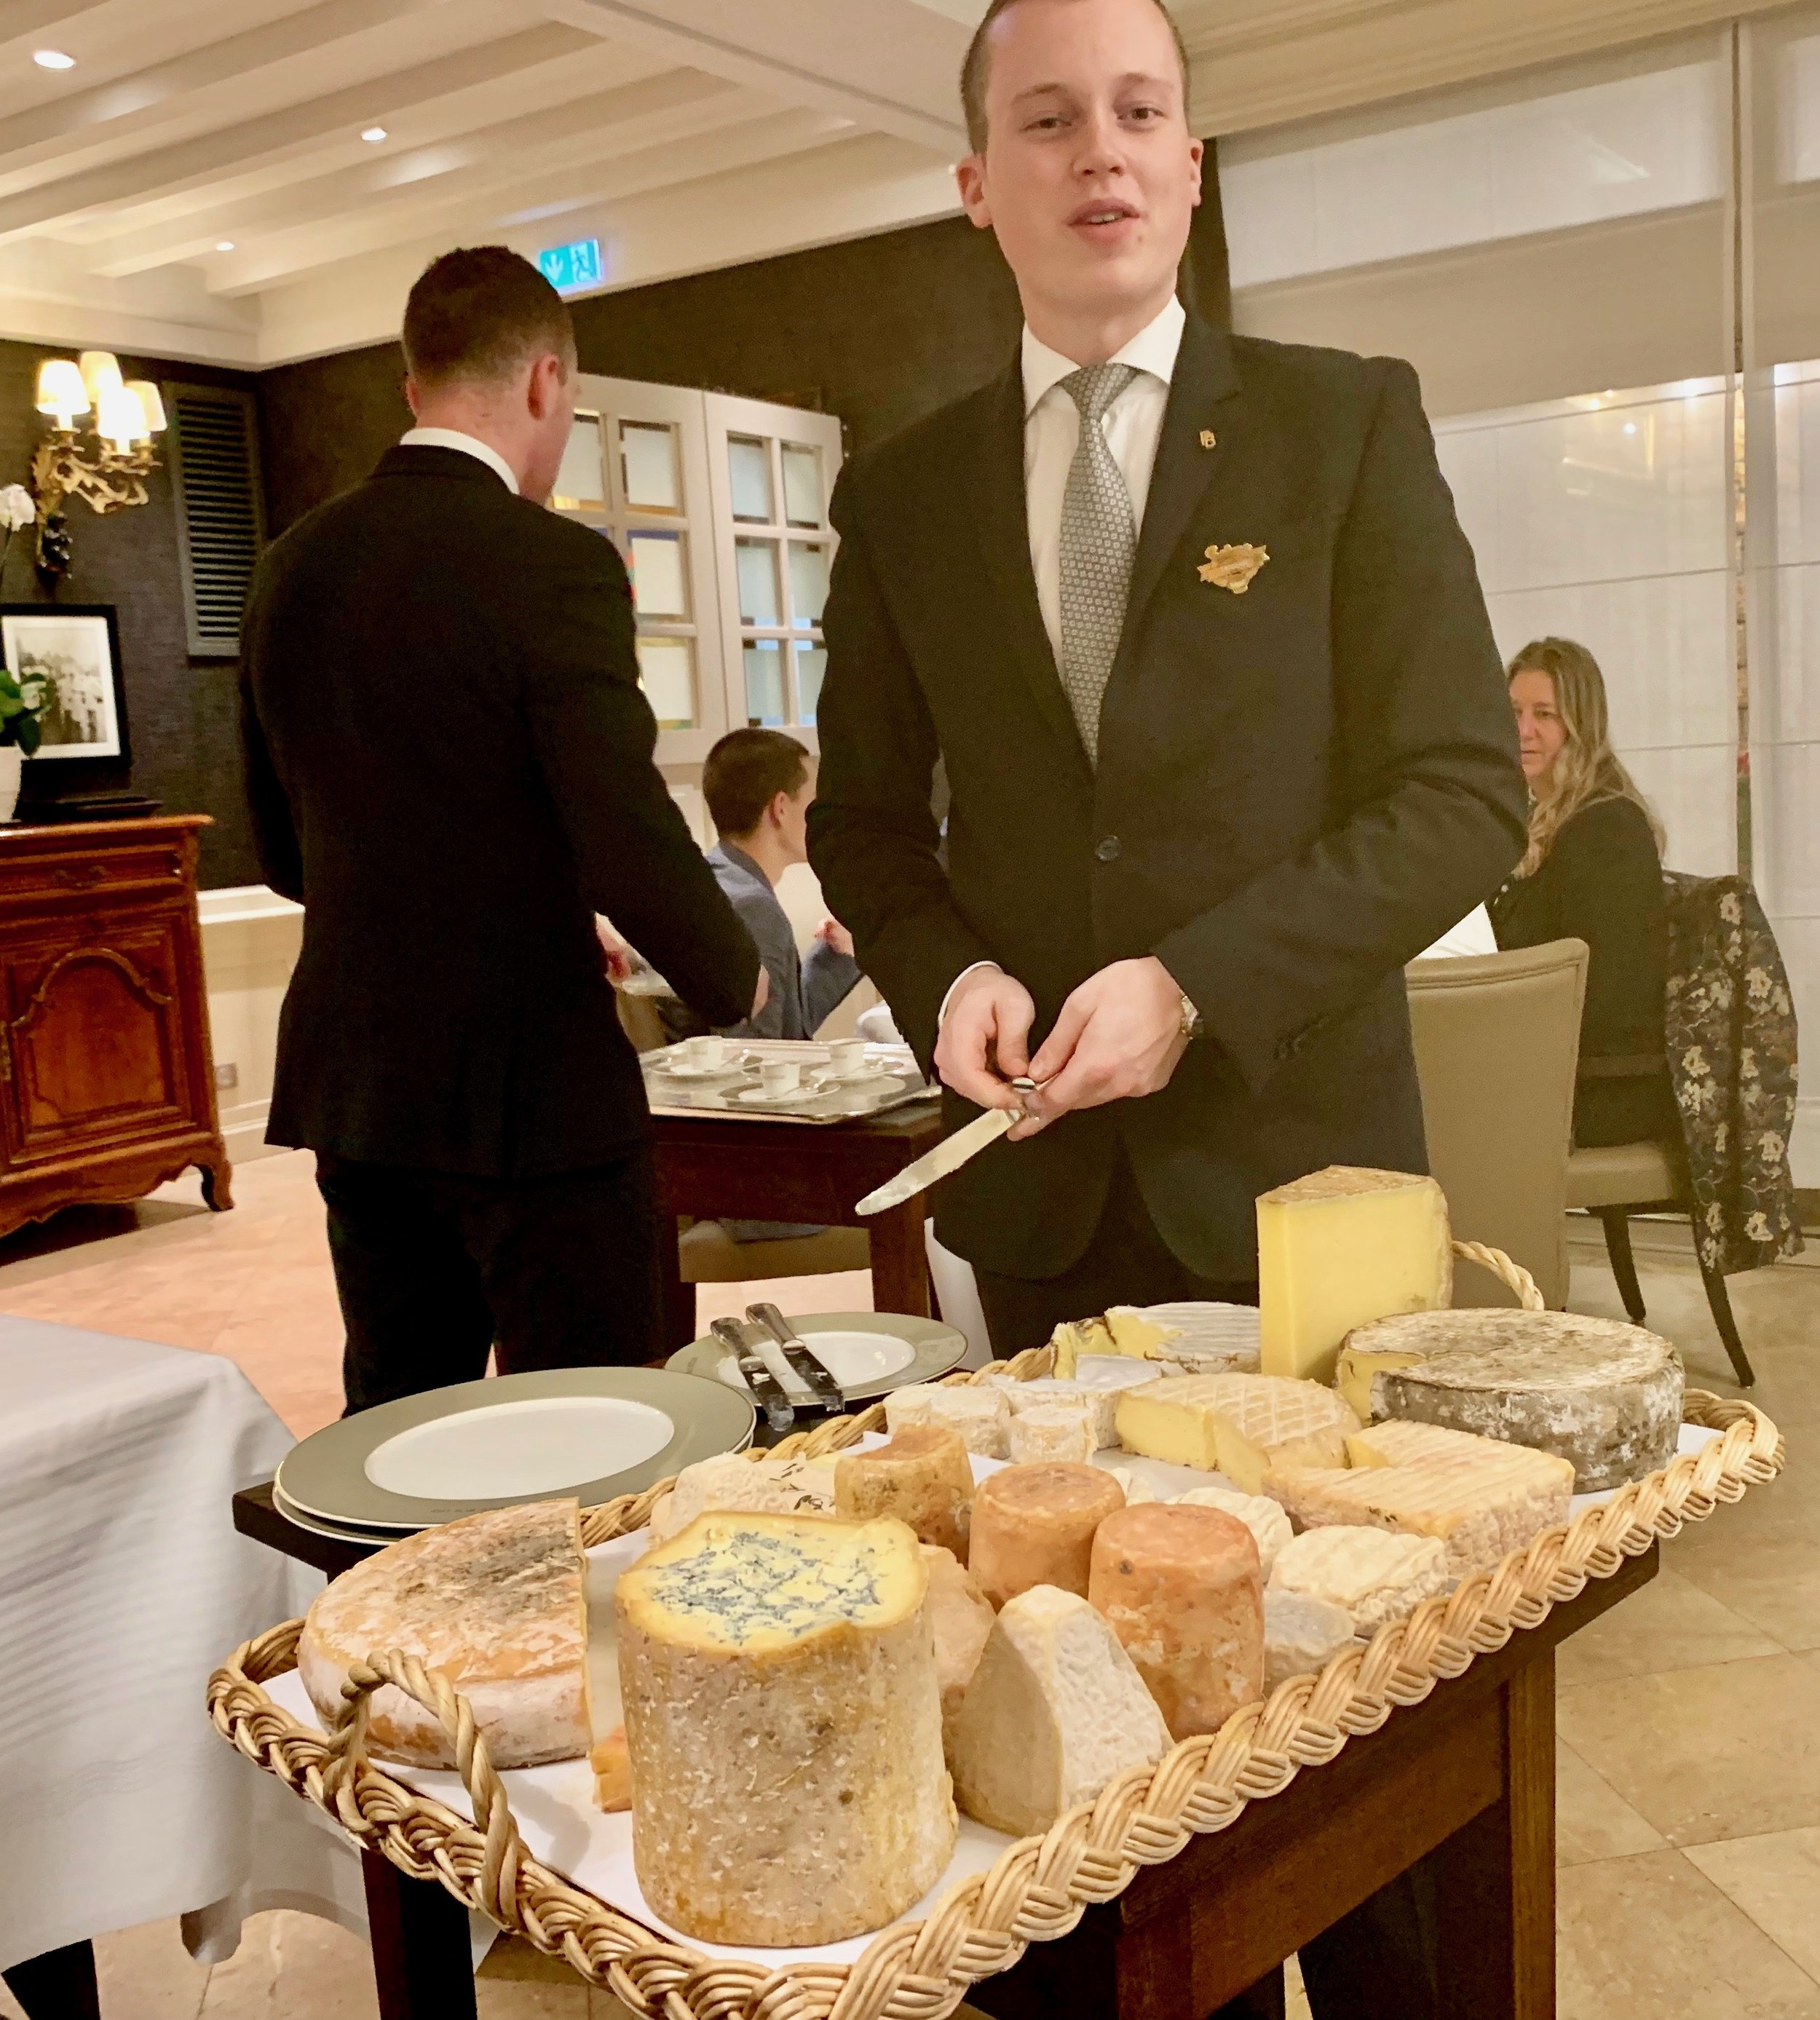 This is part of the cheese display. We were invited to be served pieces of as many as we wanted. Dessert was served the same way, but we have no photo for some reason.